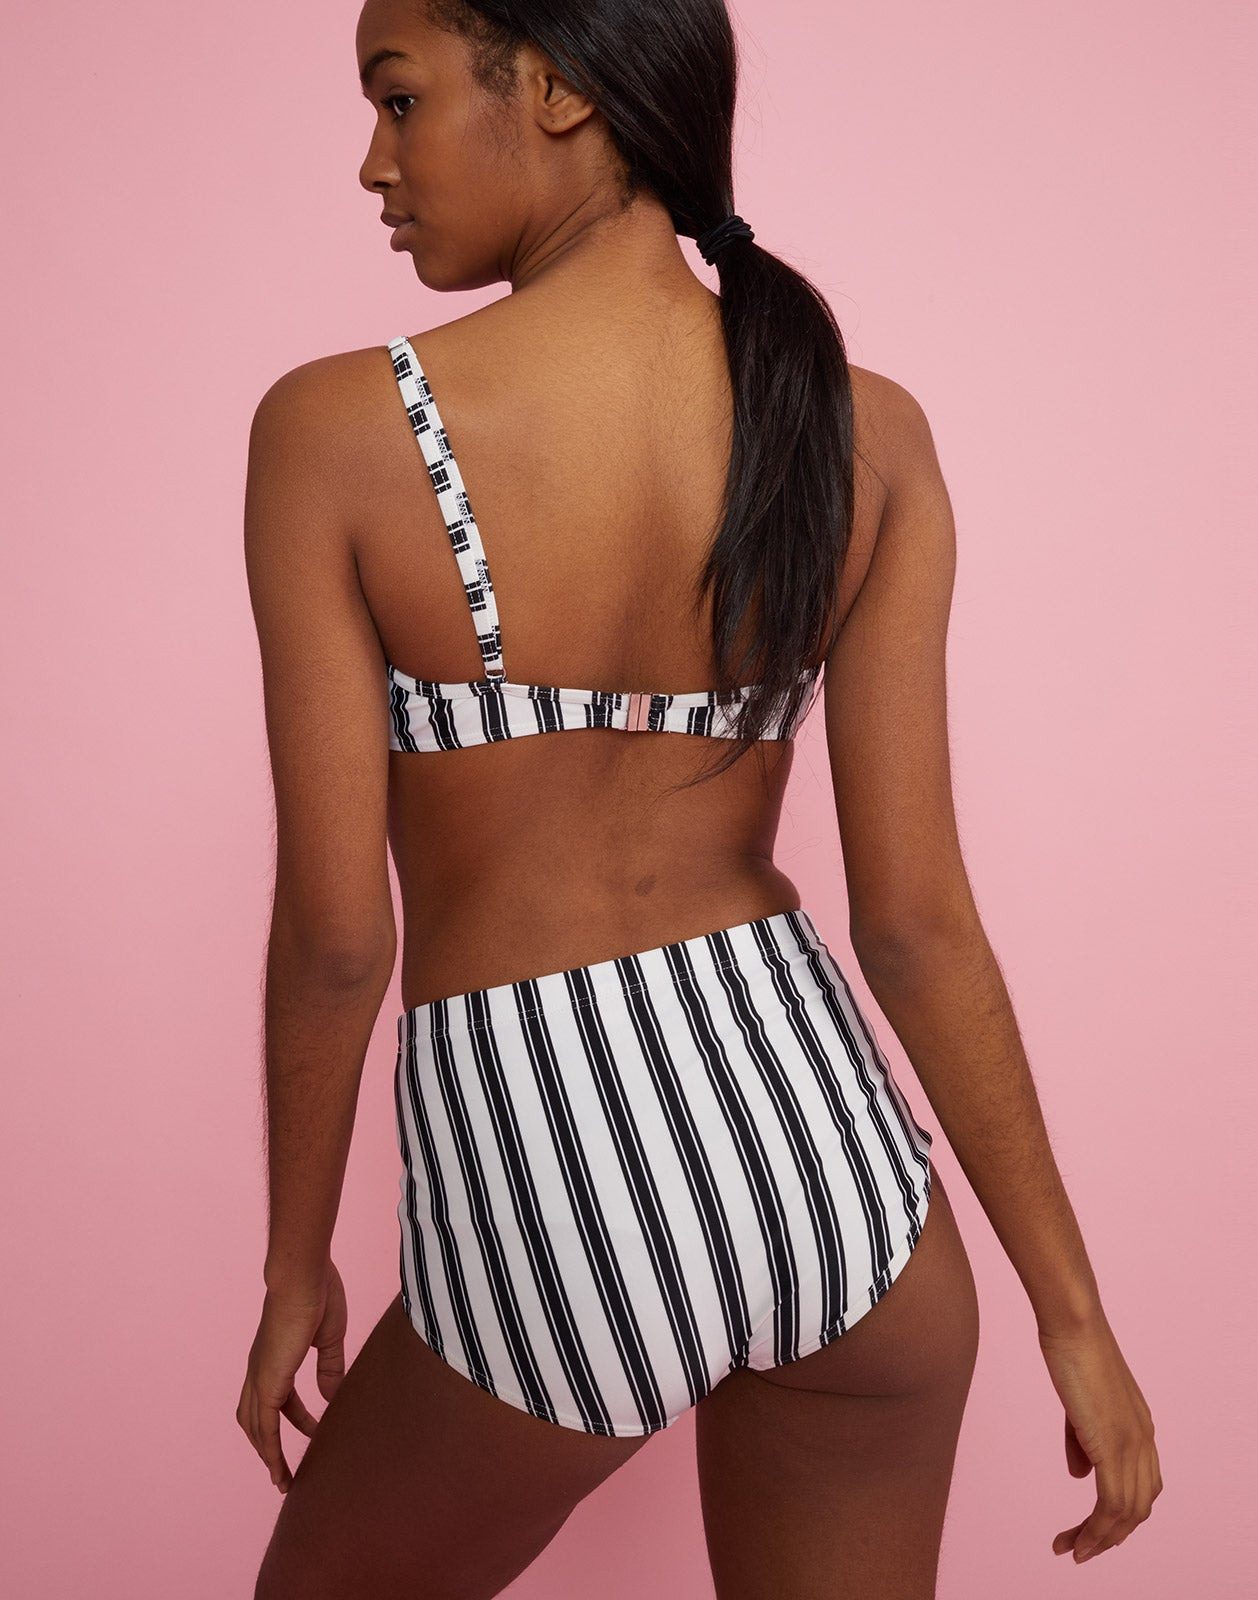 Back view of high rise bikini bottom with black and white stripes